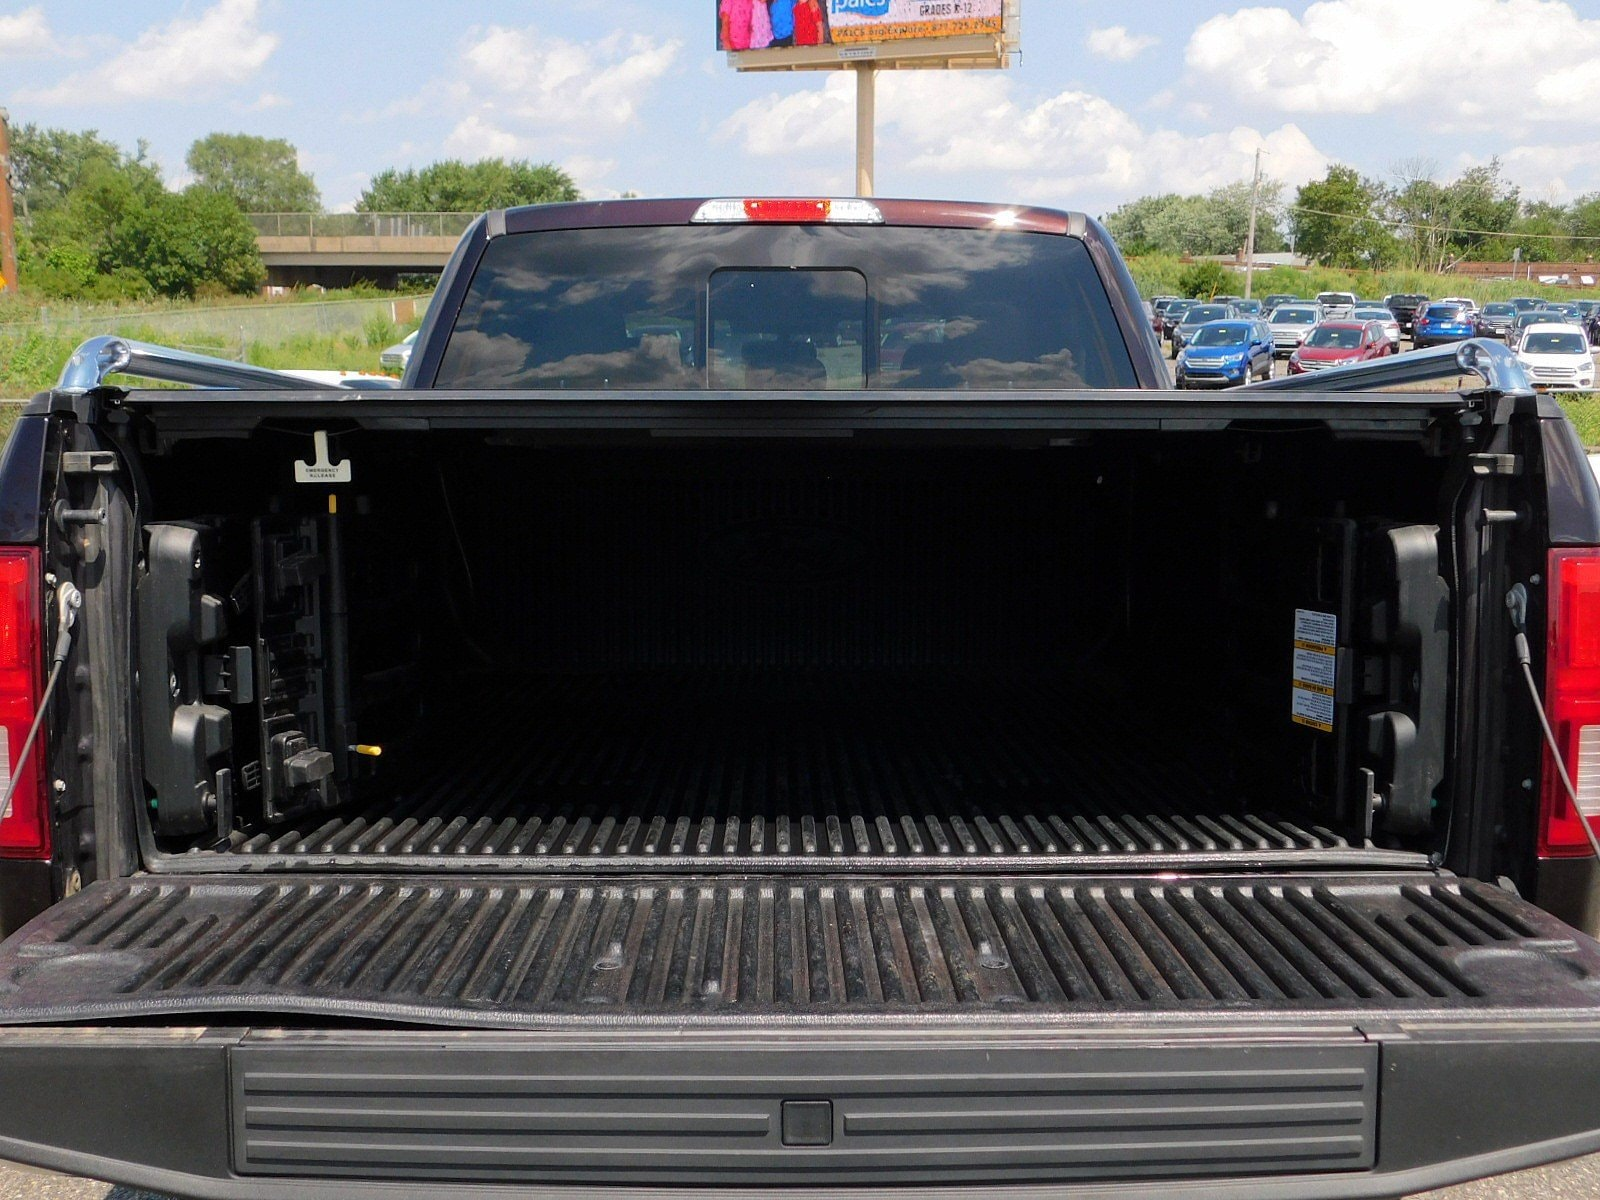 88 F250 Diesel Connect Batteries Properly Ford Truck Enthusiasts